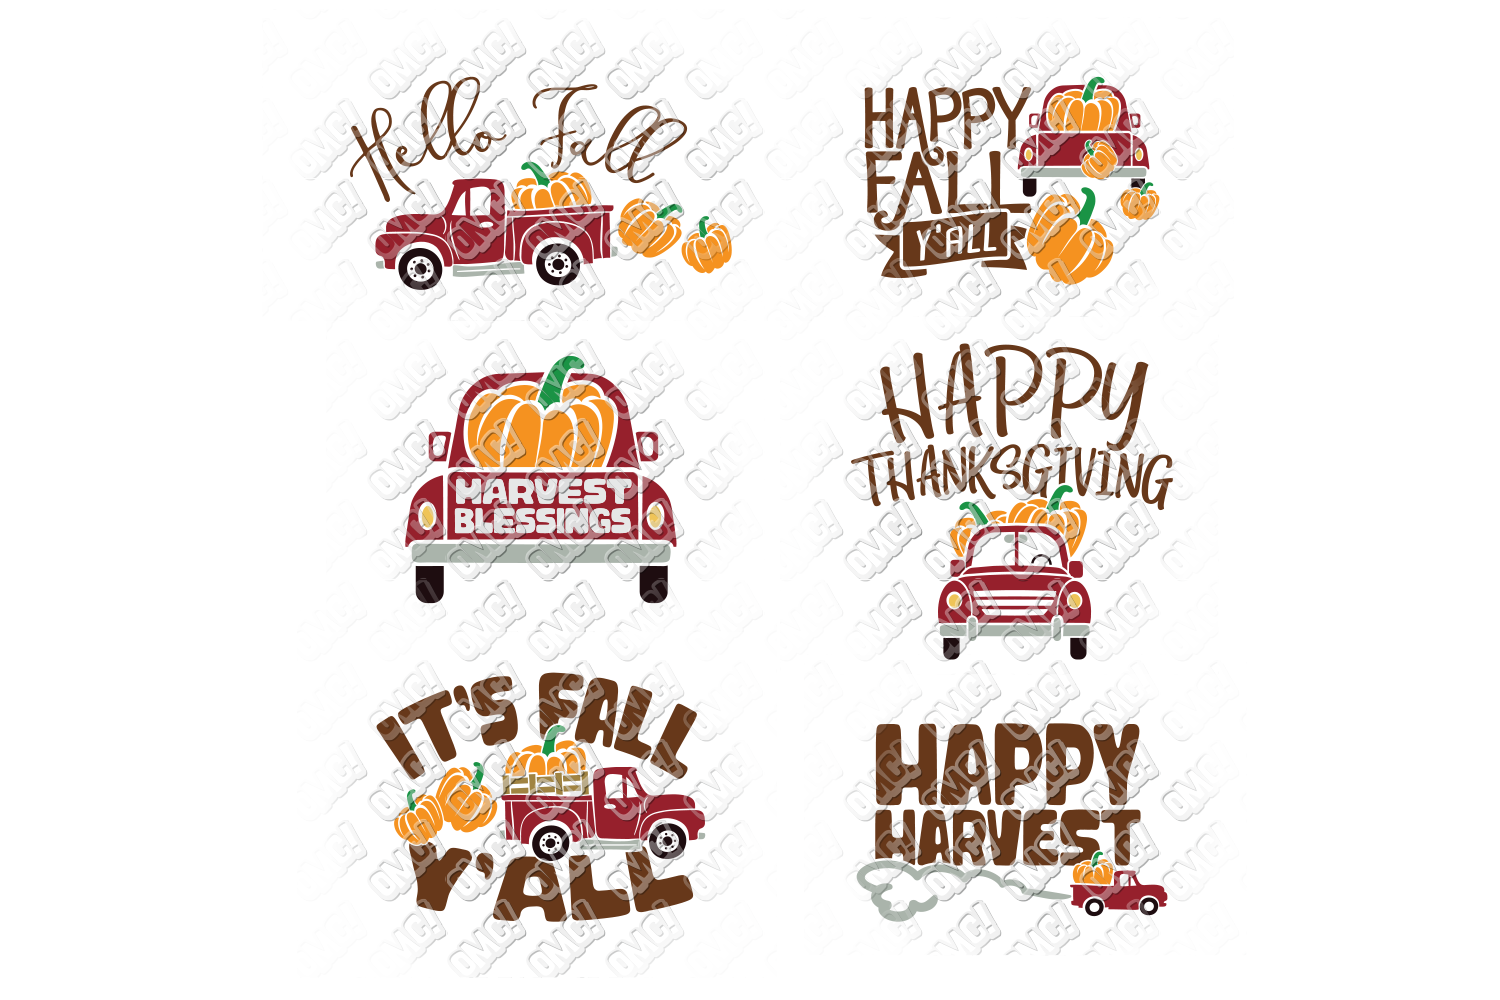 Vintage Pumpkin Truck Fall in SVG, DXF, PNG, EPS, JPEG example image 5